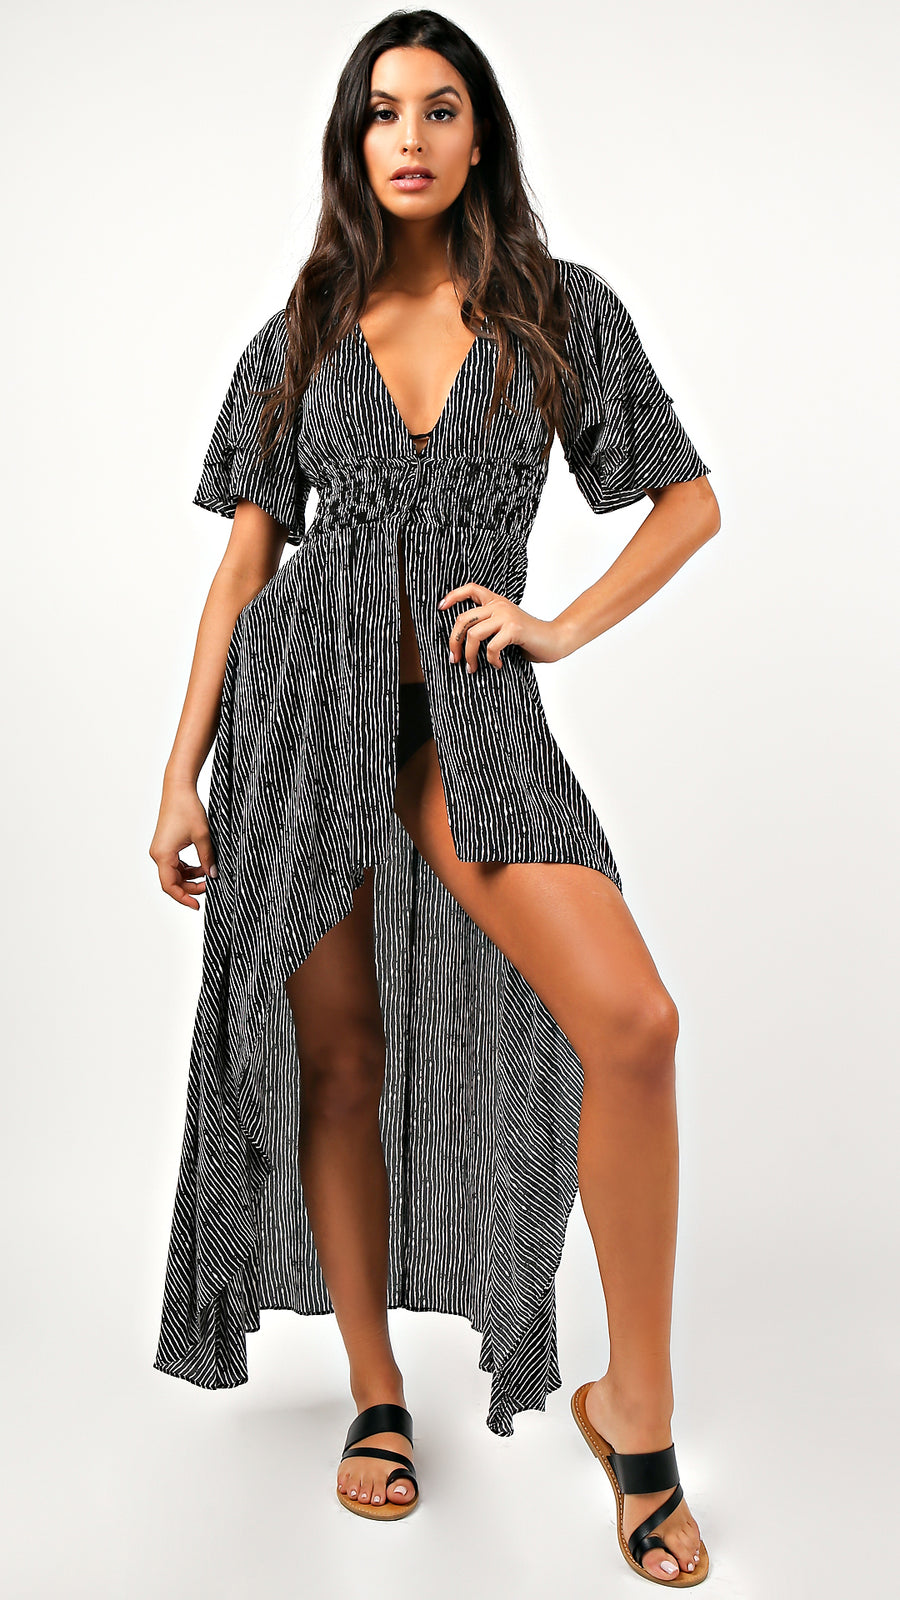 Alissa Cover Up Dress - ANGL